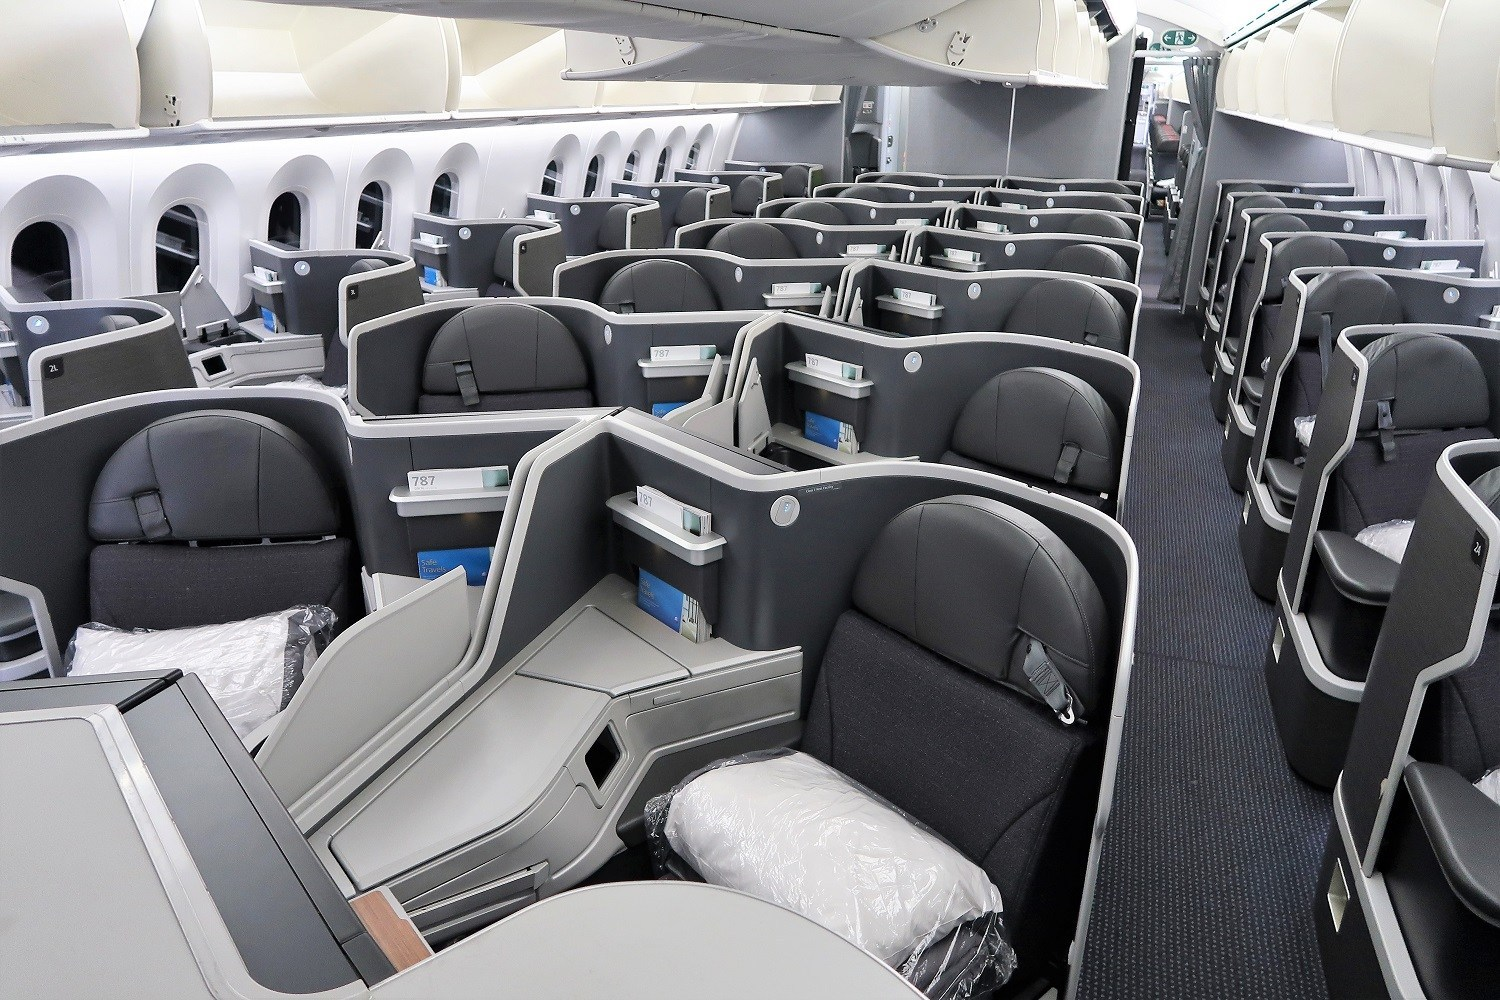 Aeromexico business class seat